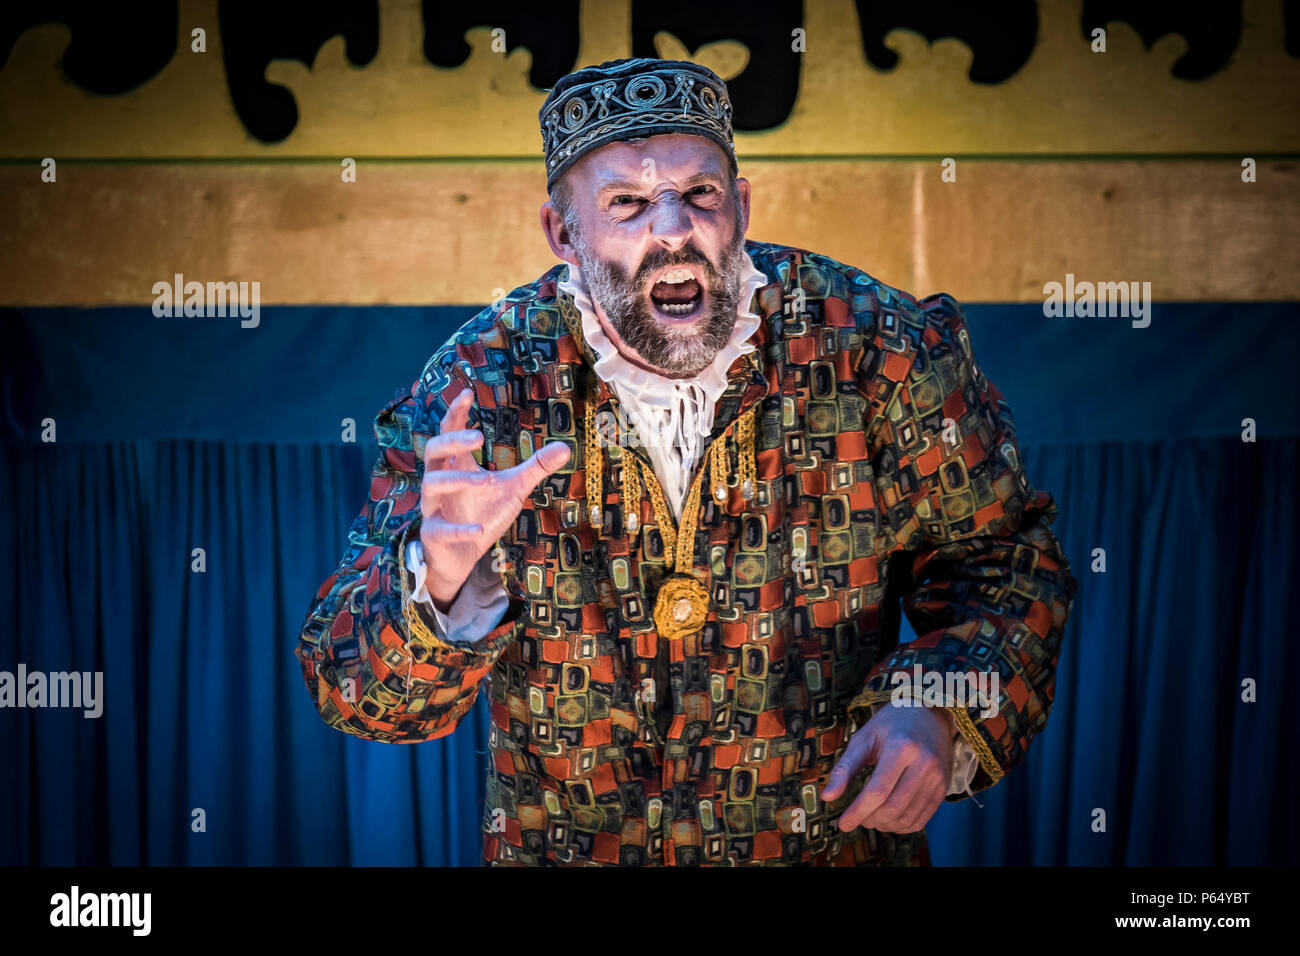 A performance of The Merchant of Venice by Illyria Theatre at Trebah Garden Amphitheatre in Cornwall. - Stock Image